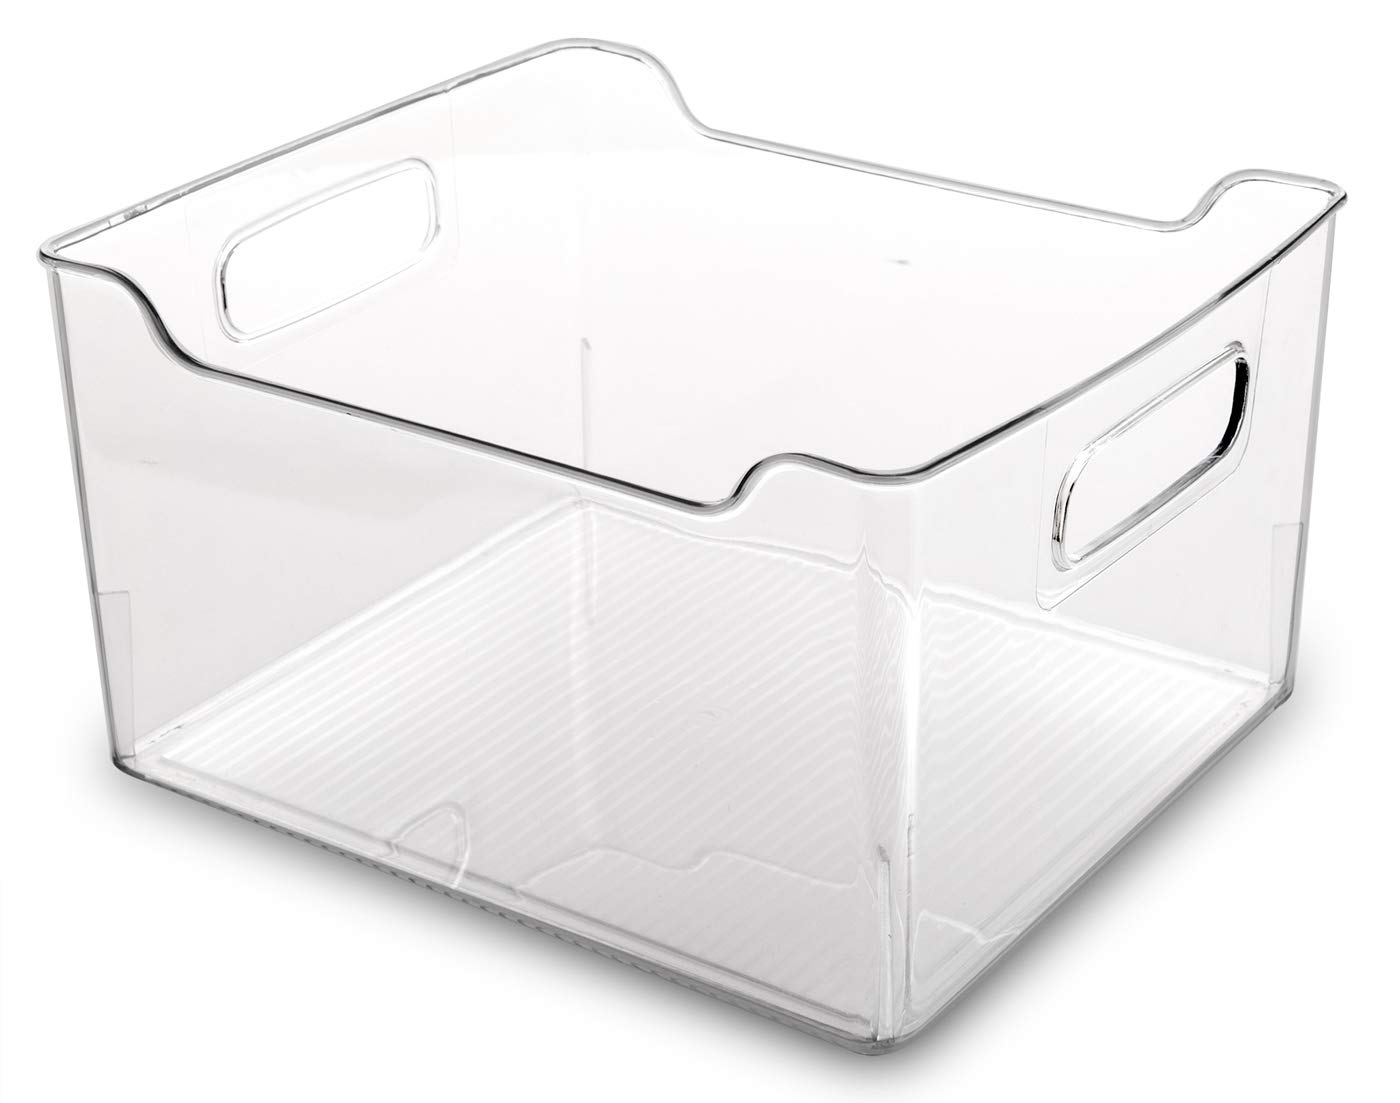 BINO Refrigerator, Freezer and Pantry Cabinet Storage Organizer Bin with Handles, Clear and Transparent Plastic Wide Nesting Food Container for Home and Kitchen 12040-CLR